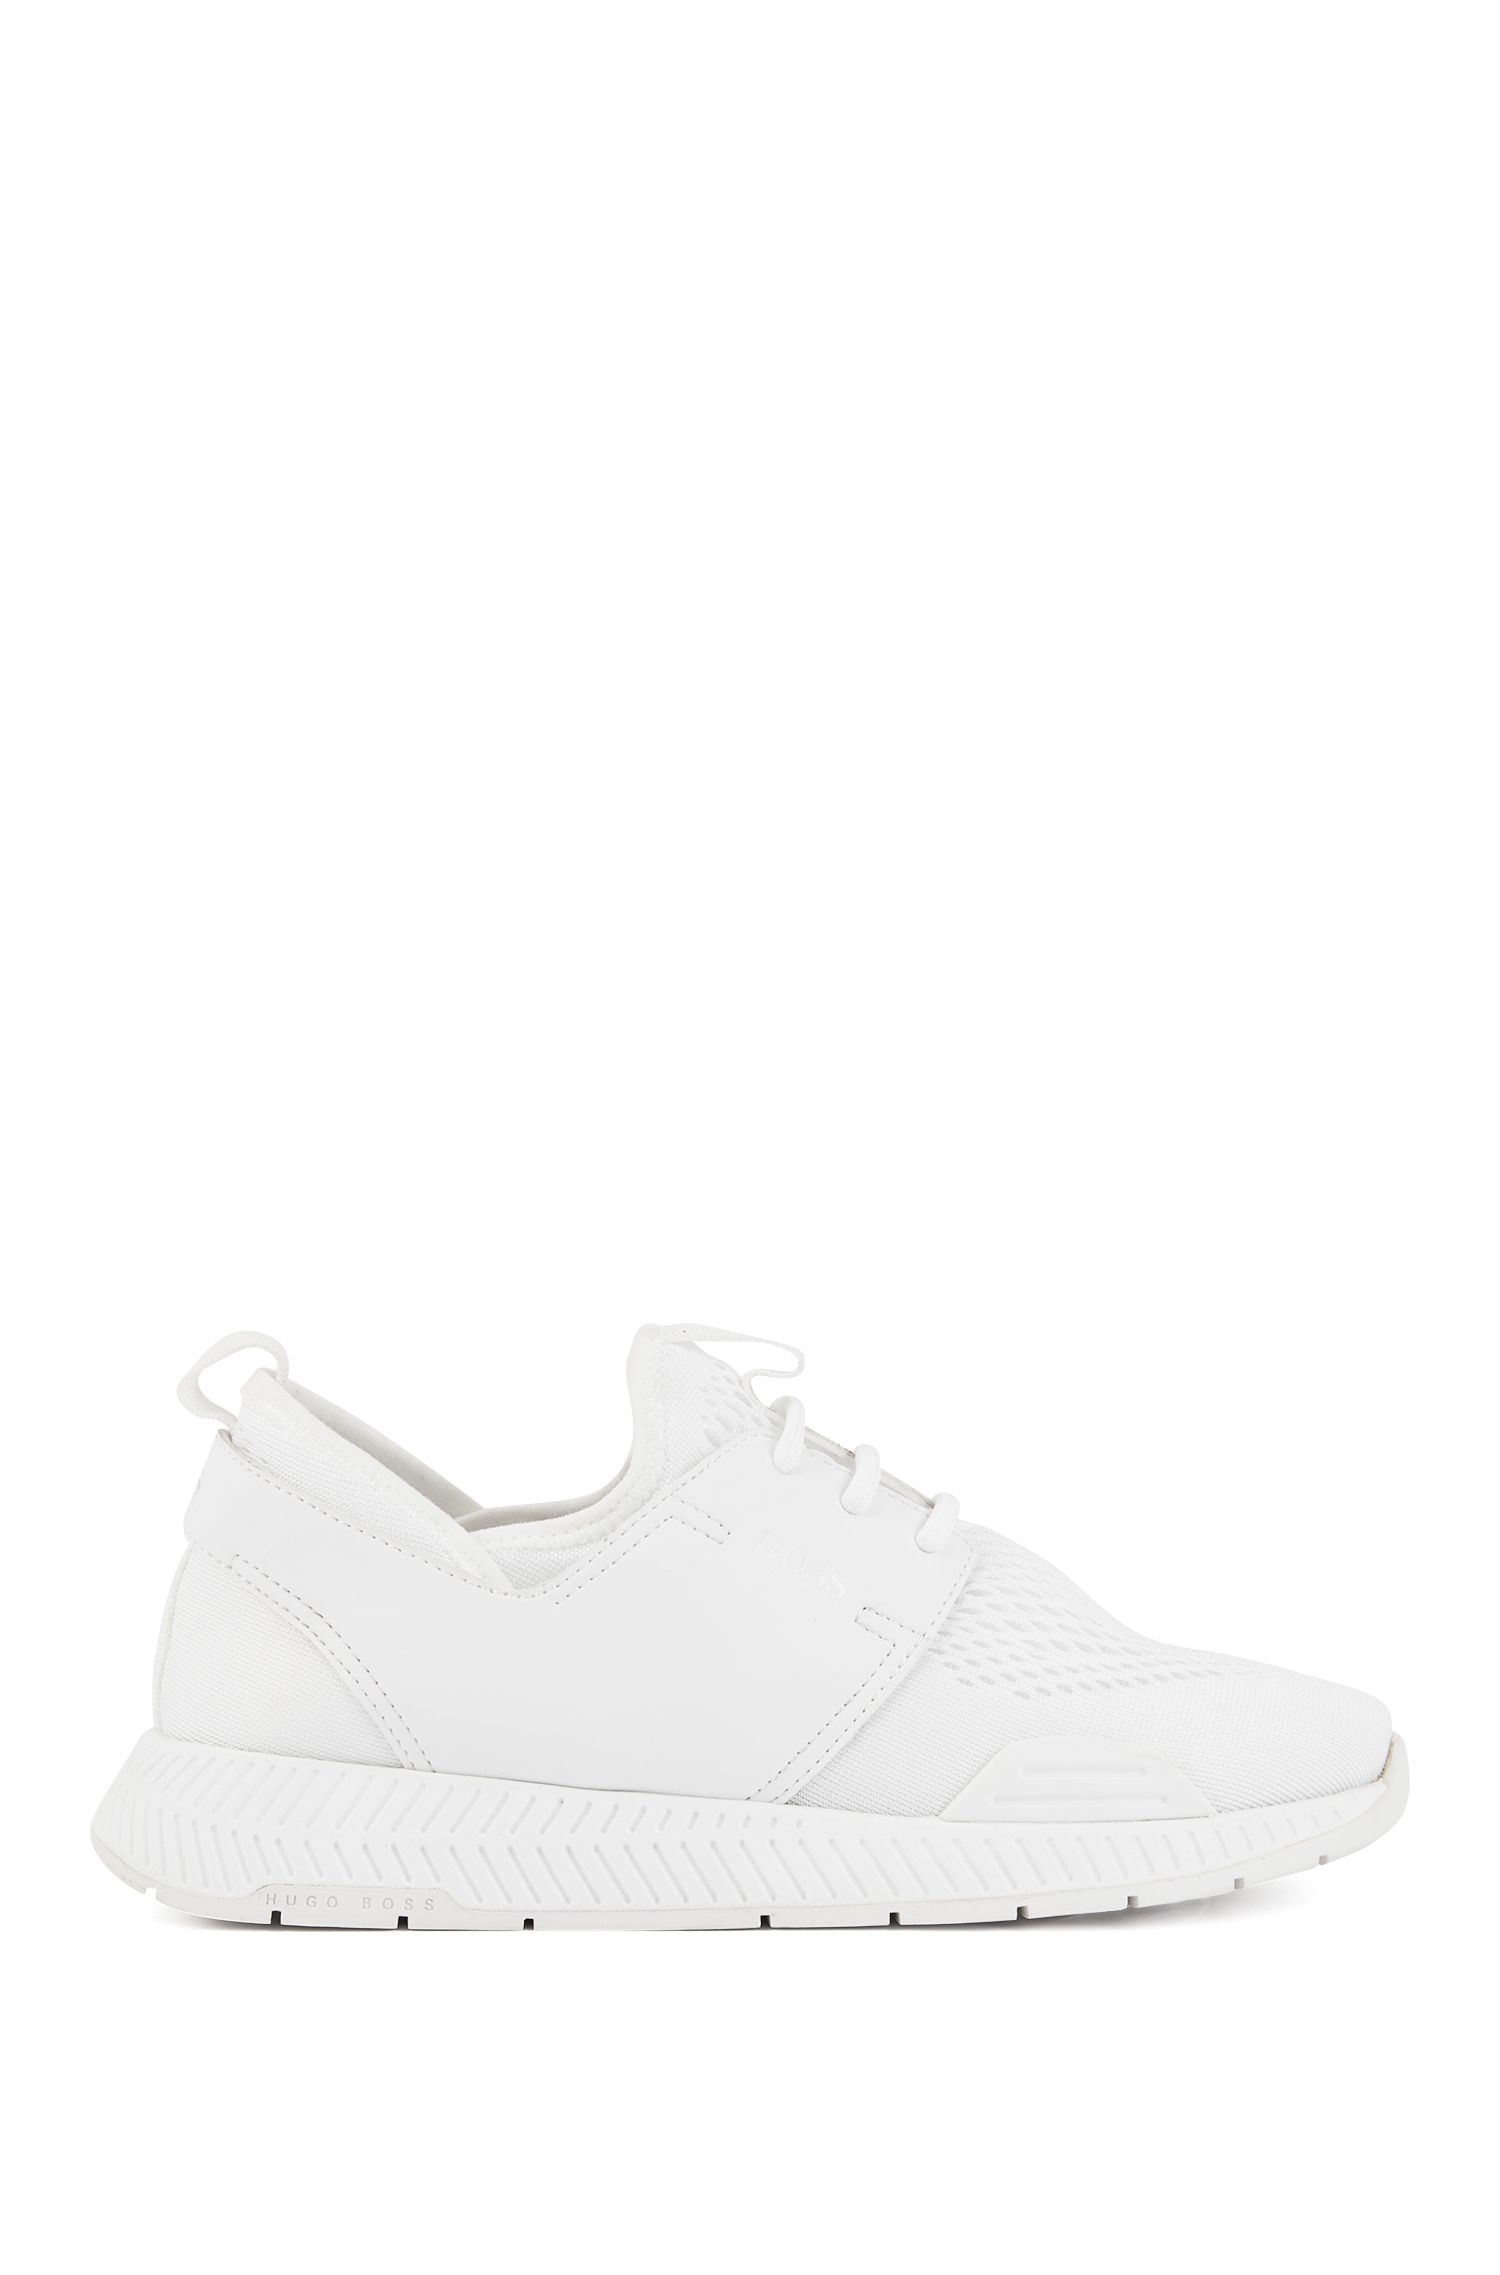 Unisex low-top sneakers with perforated mesh uppers, White